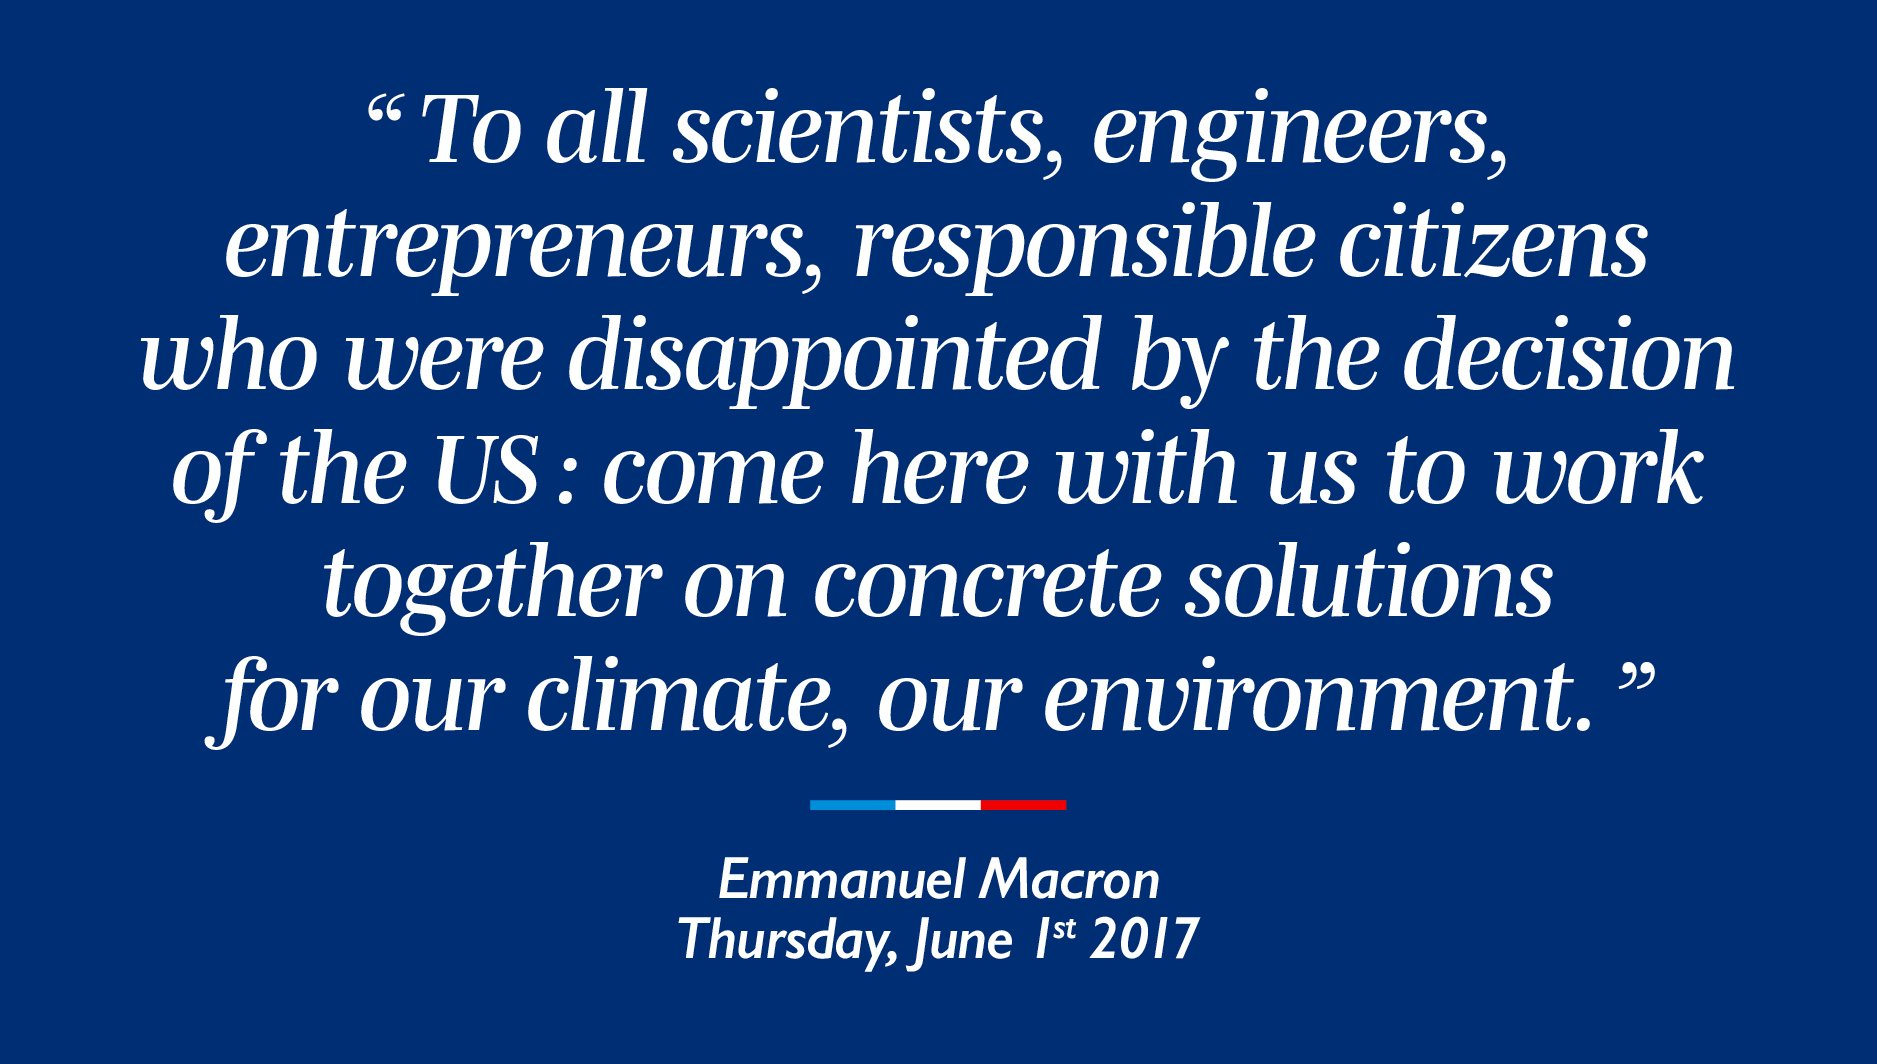 Come here with us to work together on concrete solutions for our climate, our environment. https://t.co/JXiqgMP8Xy